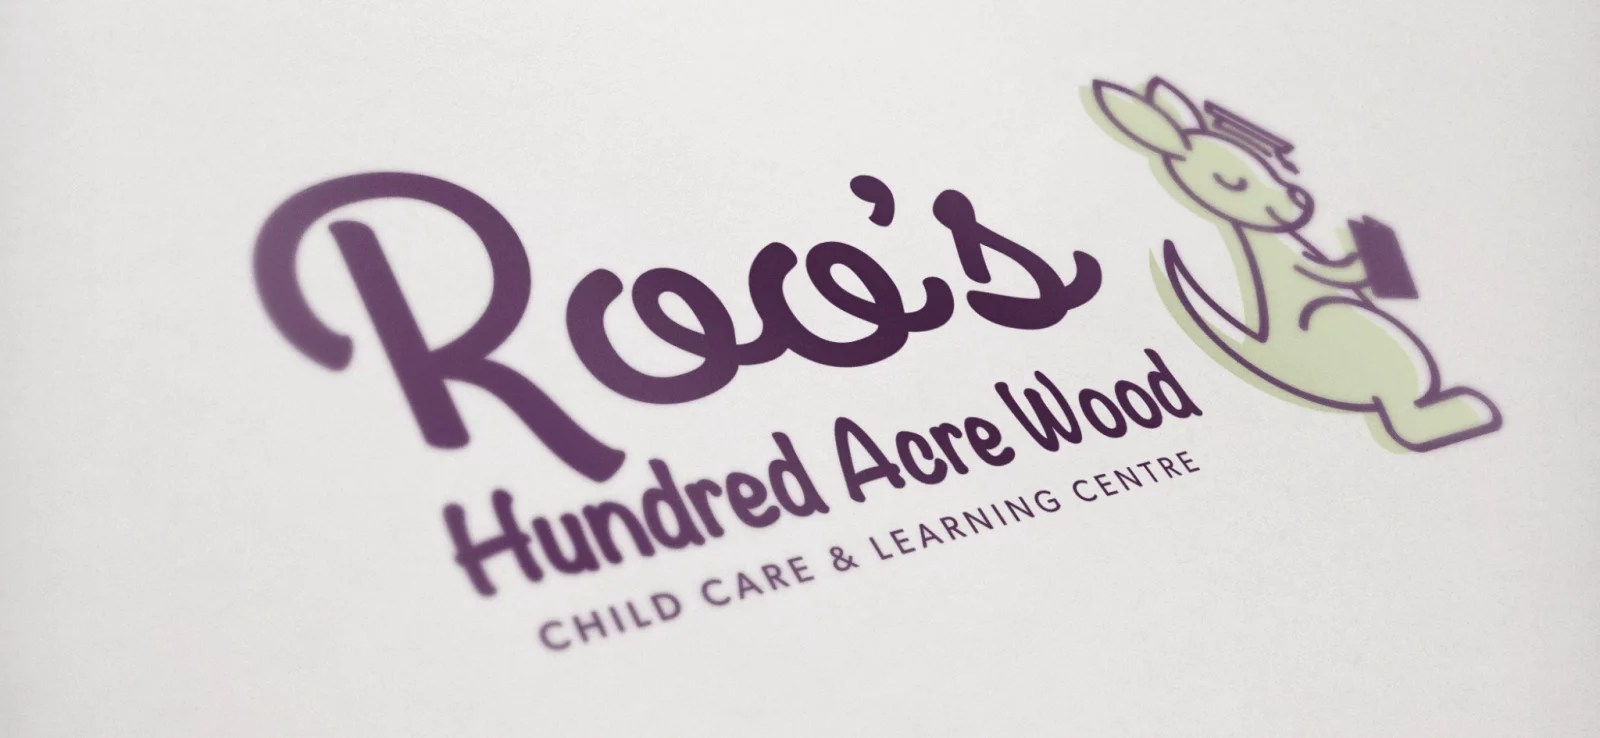 Logo Mockup for Roo's Hundred Acre Wood